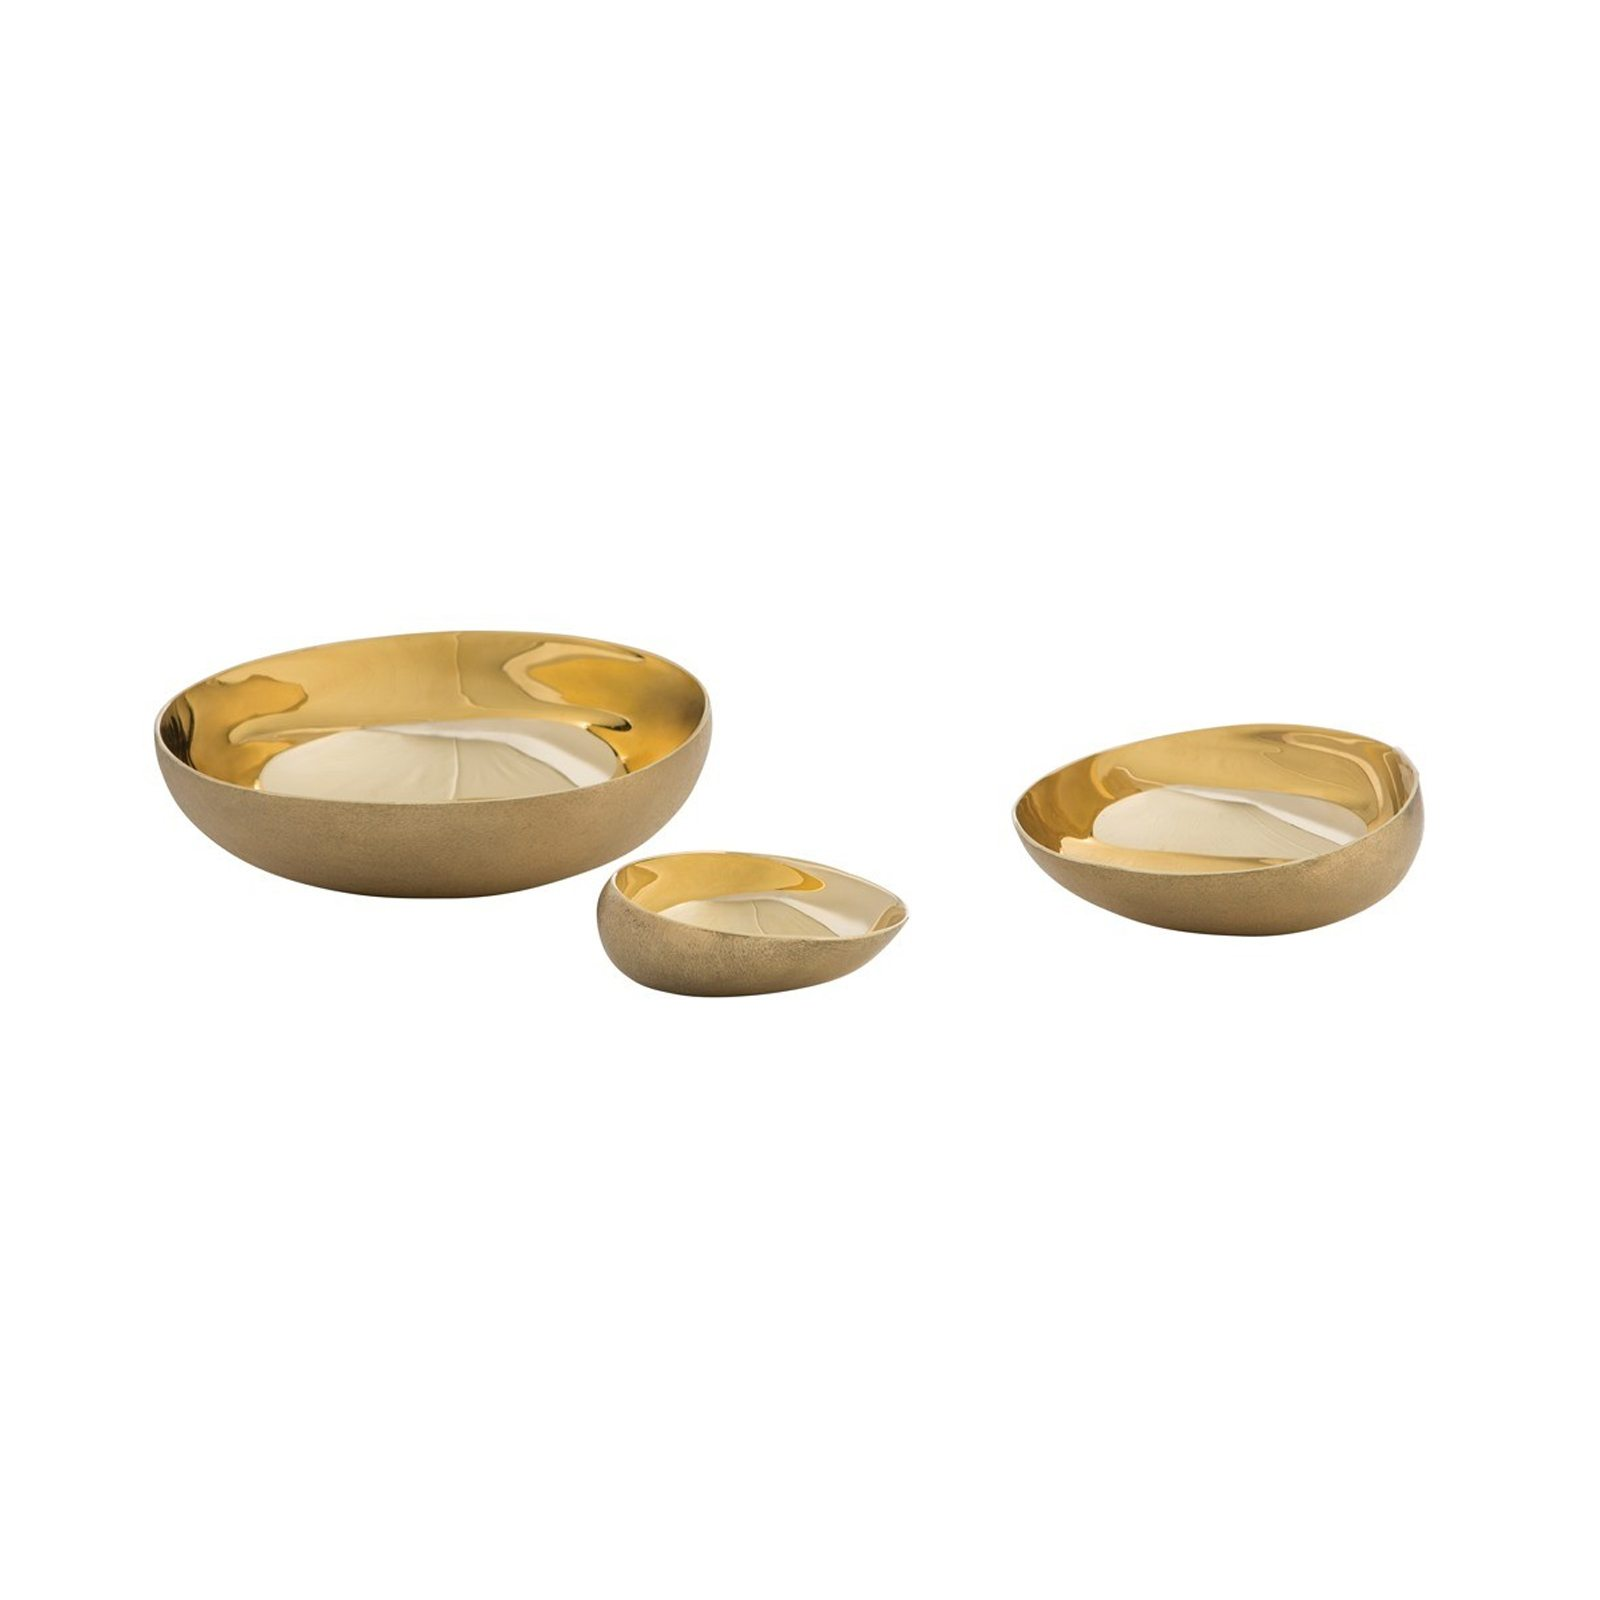 Apollo Bowls by Bonham & Bonham